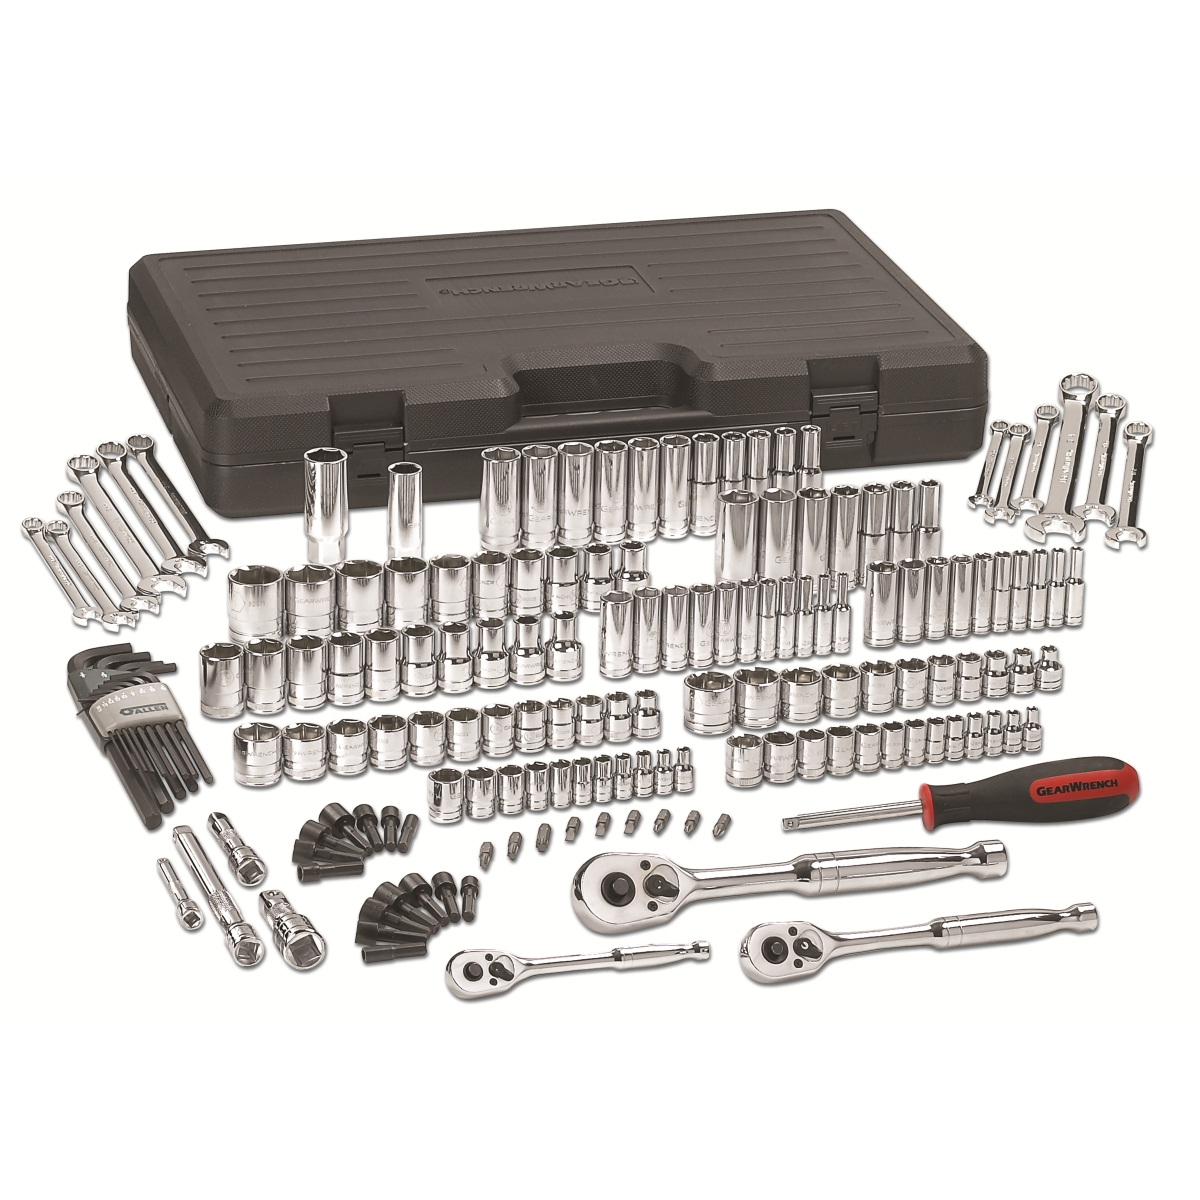 165Pc. 1/4in., 3/8in. and 1/2in. Dr Mechanic's Tool Set